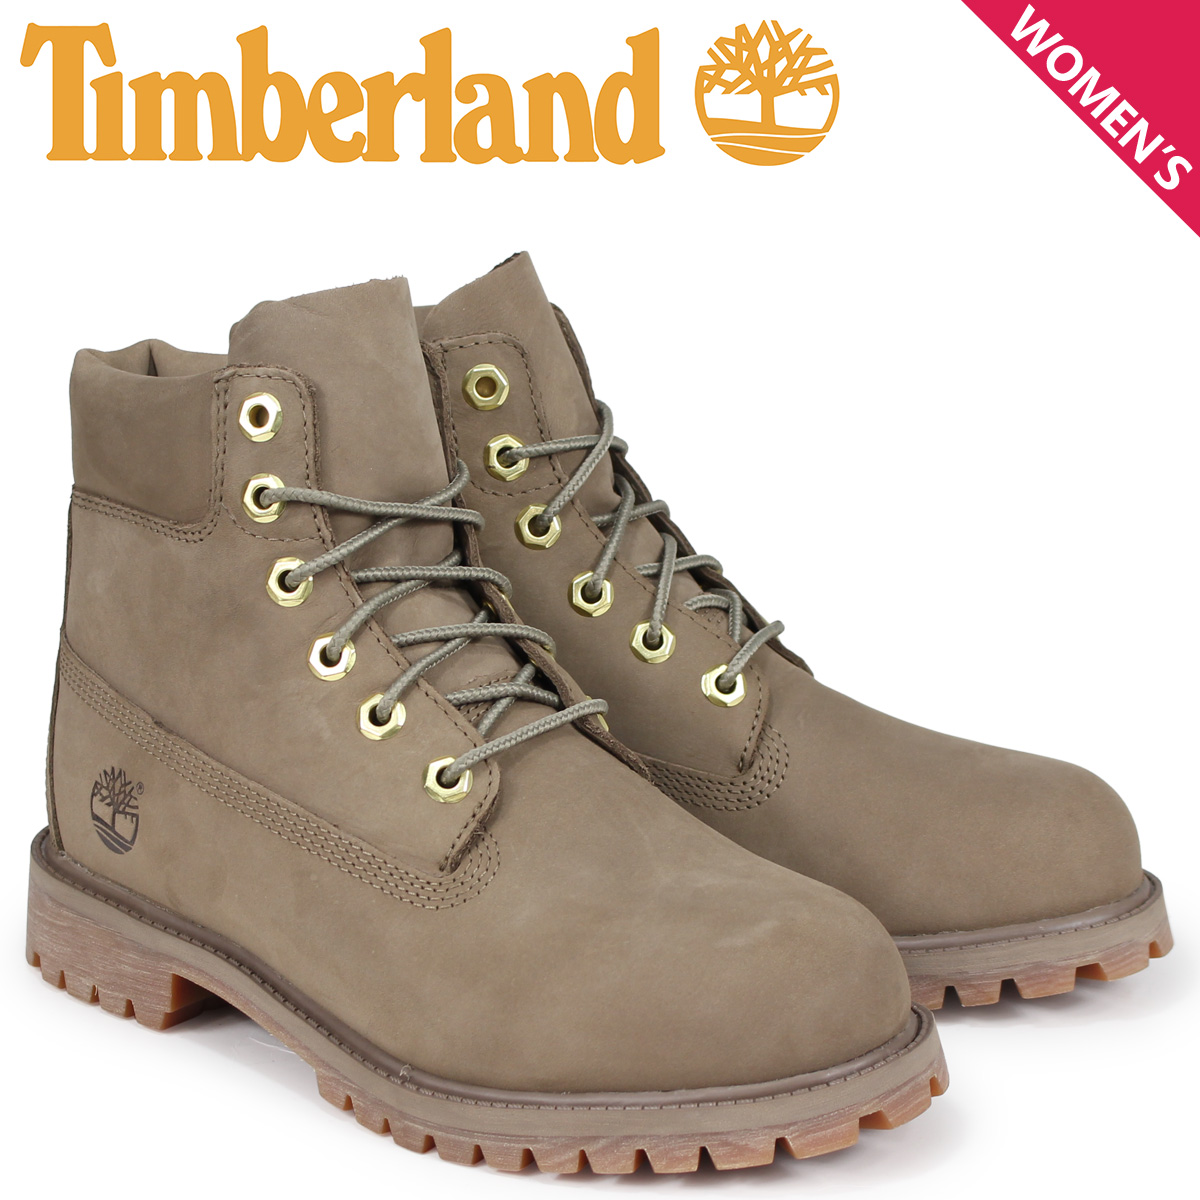 f100de7acaaebf Timberland boots Lady s 6 inches Timberland kids JUNIOR 6-INCH PREMIUM  WATERPROOF BOOTS A1VDT W Wise graige